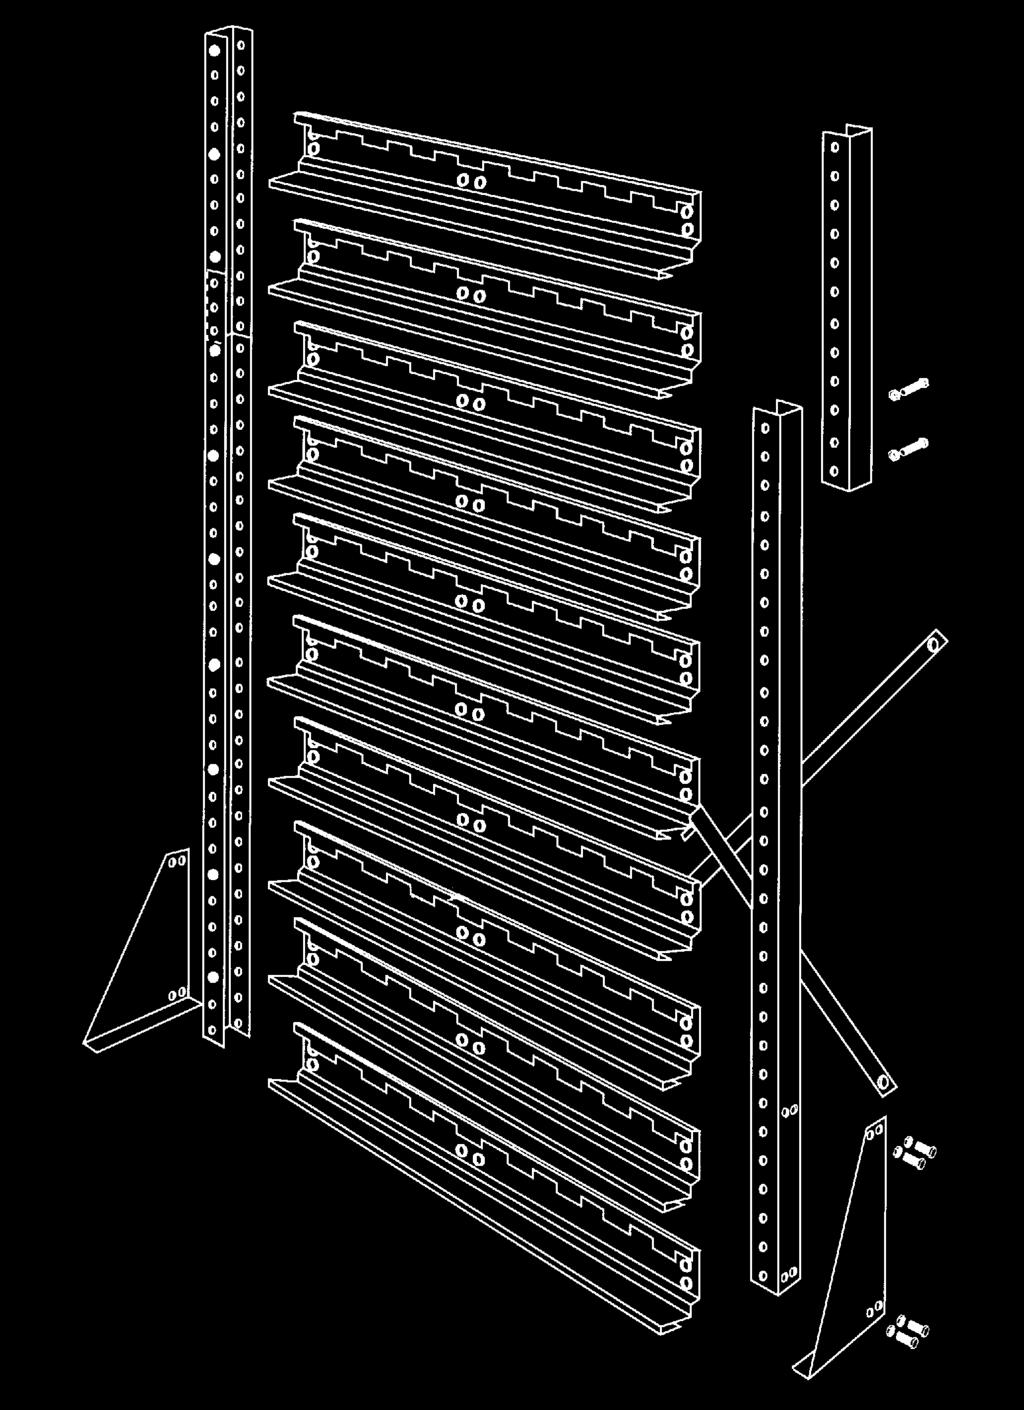 Ted Thorsen Steel Assembly Bins Pdf Pb30 Wiring Diagram Empty Frame Stands And Trucks Can Be Filled To Your Specification Is At